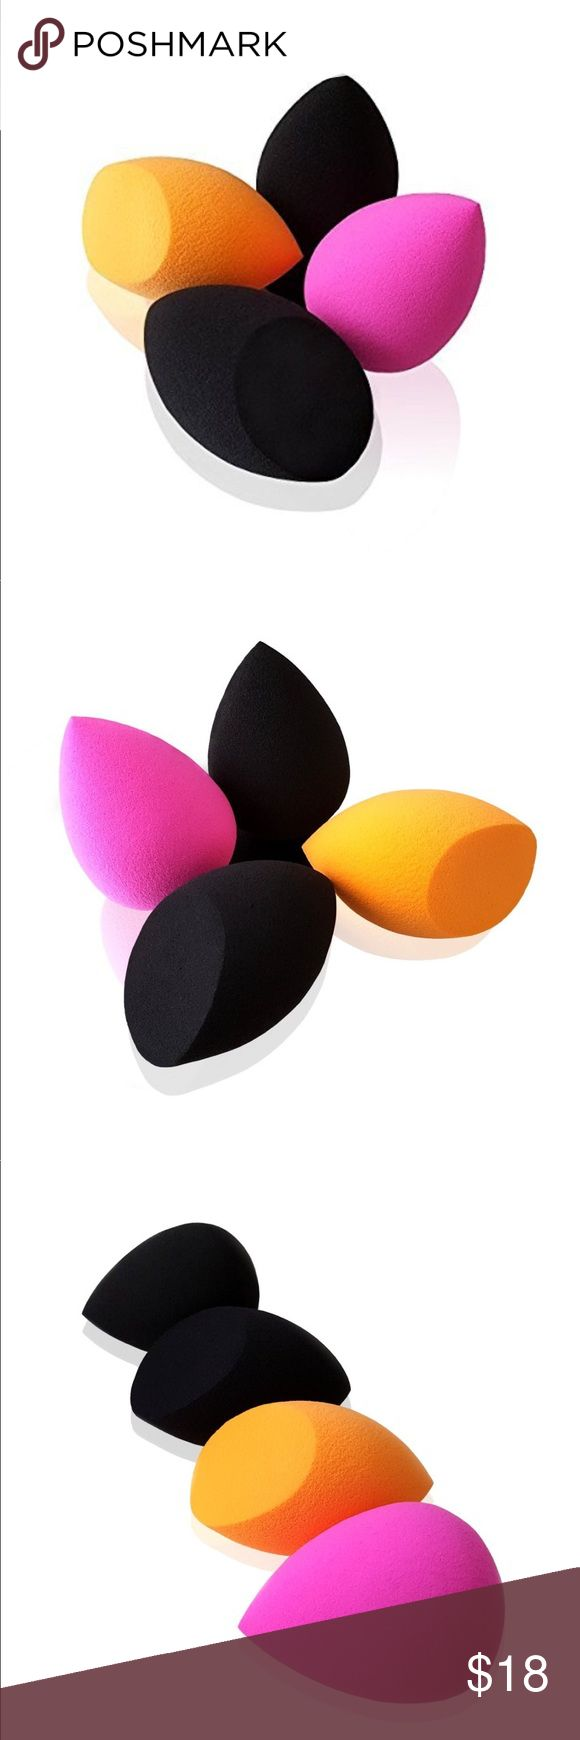 Pro Beauty Sponge Makeup Blender 4 pieces NEW Pro Beauty Sponge Makeup Blender - For Original Liquid Foundation, Concealer, Cream, Powder, Blush - Soft Latex Free Vegan Sponges - Blending, Highlighting, Contouring - Flawless Coverage 4 Piece              BEAUTY BLENDER SPONGE SET Lamora´s vegan-friendly, cruelty free, and SOFT makeup sponges are finally here to score a flawless blend. Never again will you miss a spot or have an uneven jawline. With these beauty sponges providing…